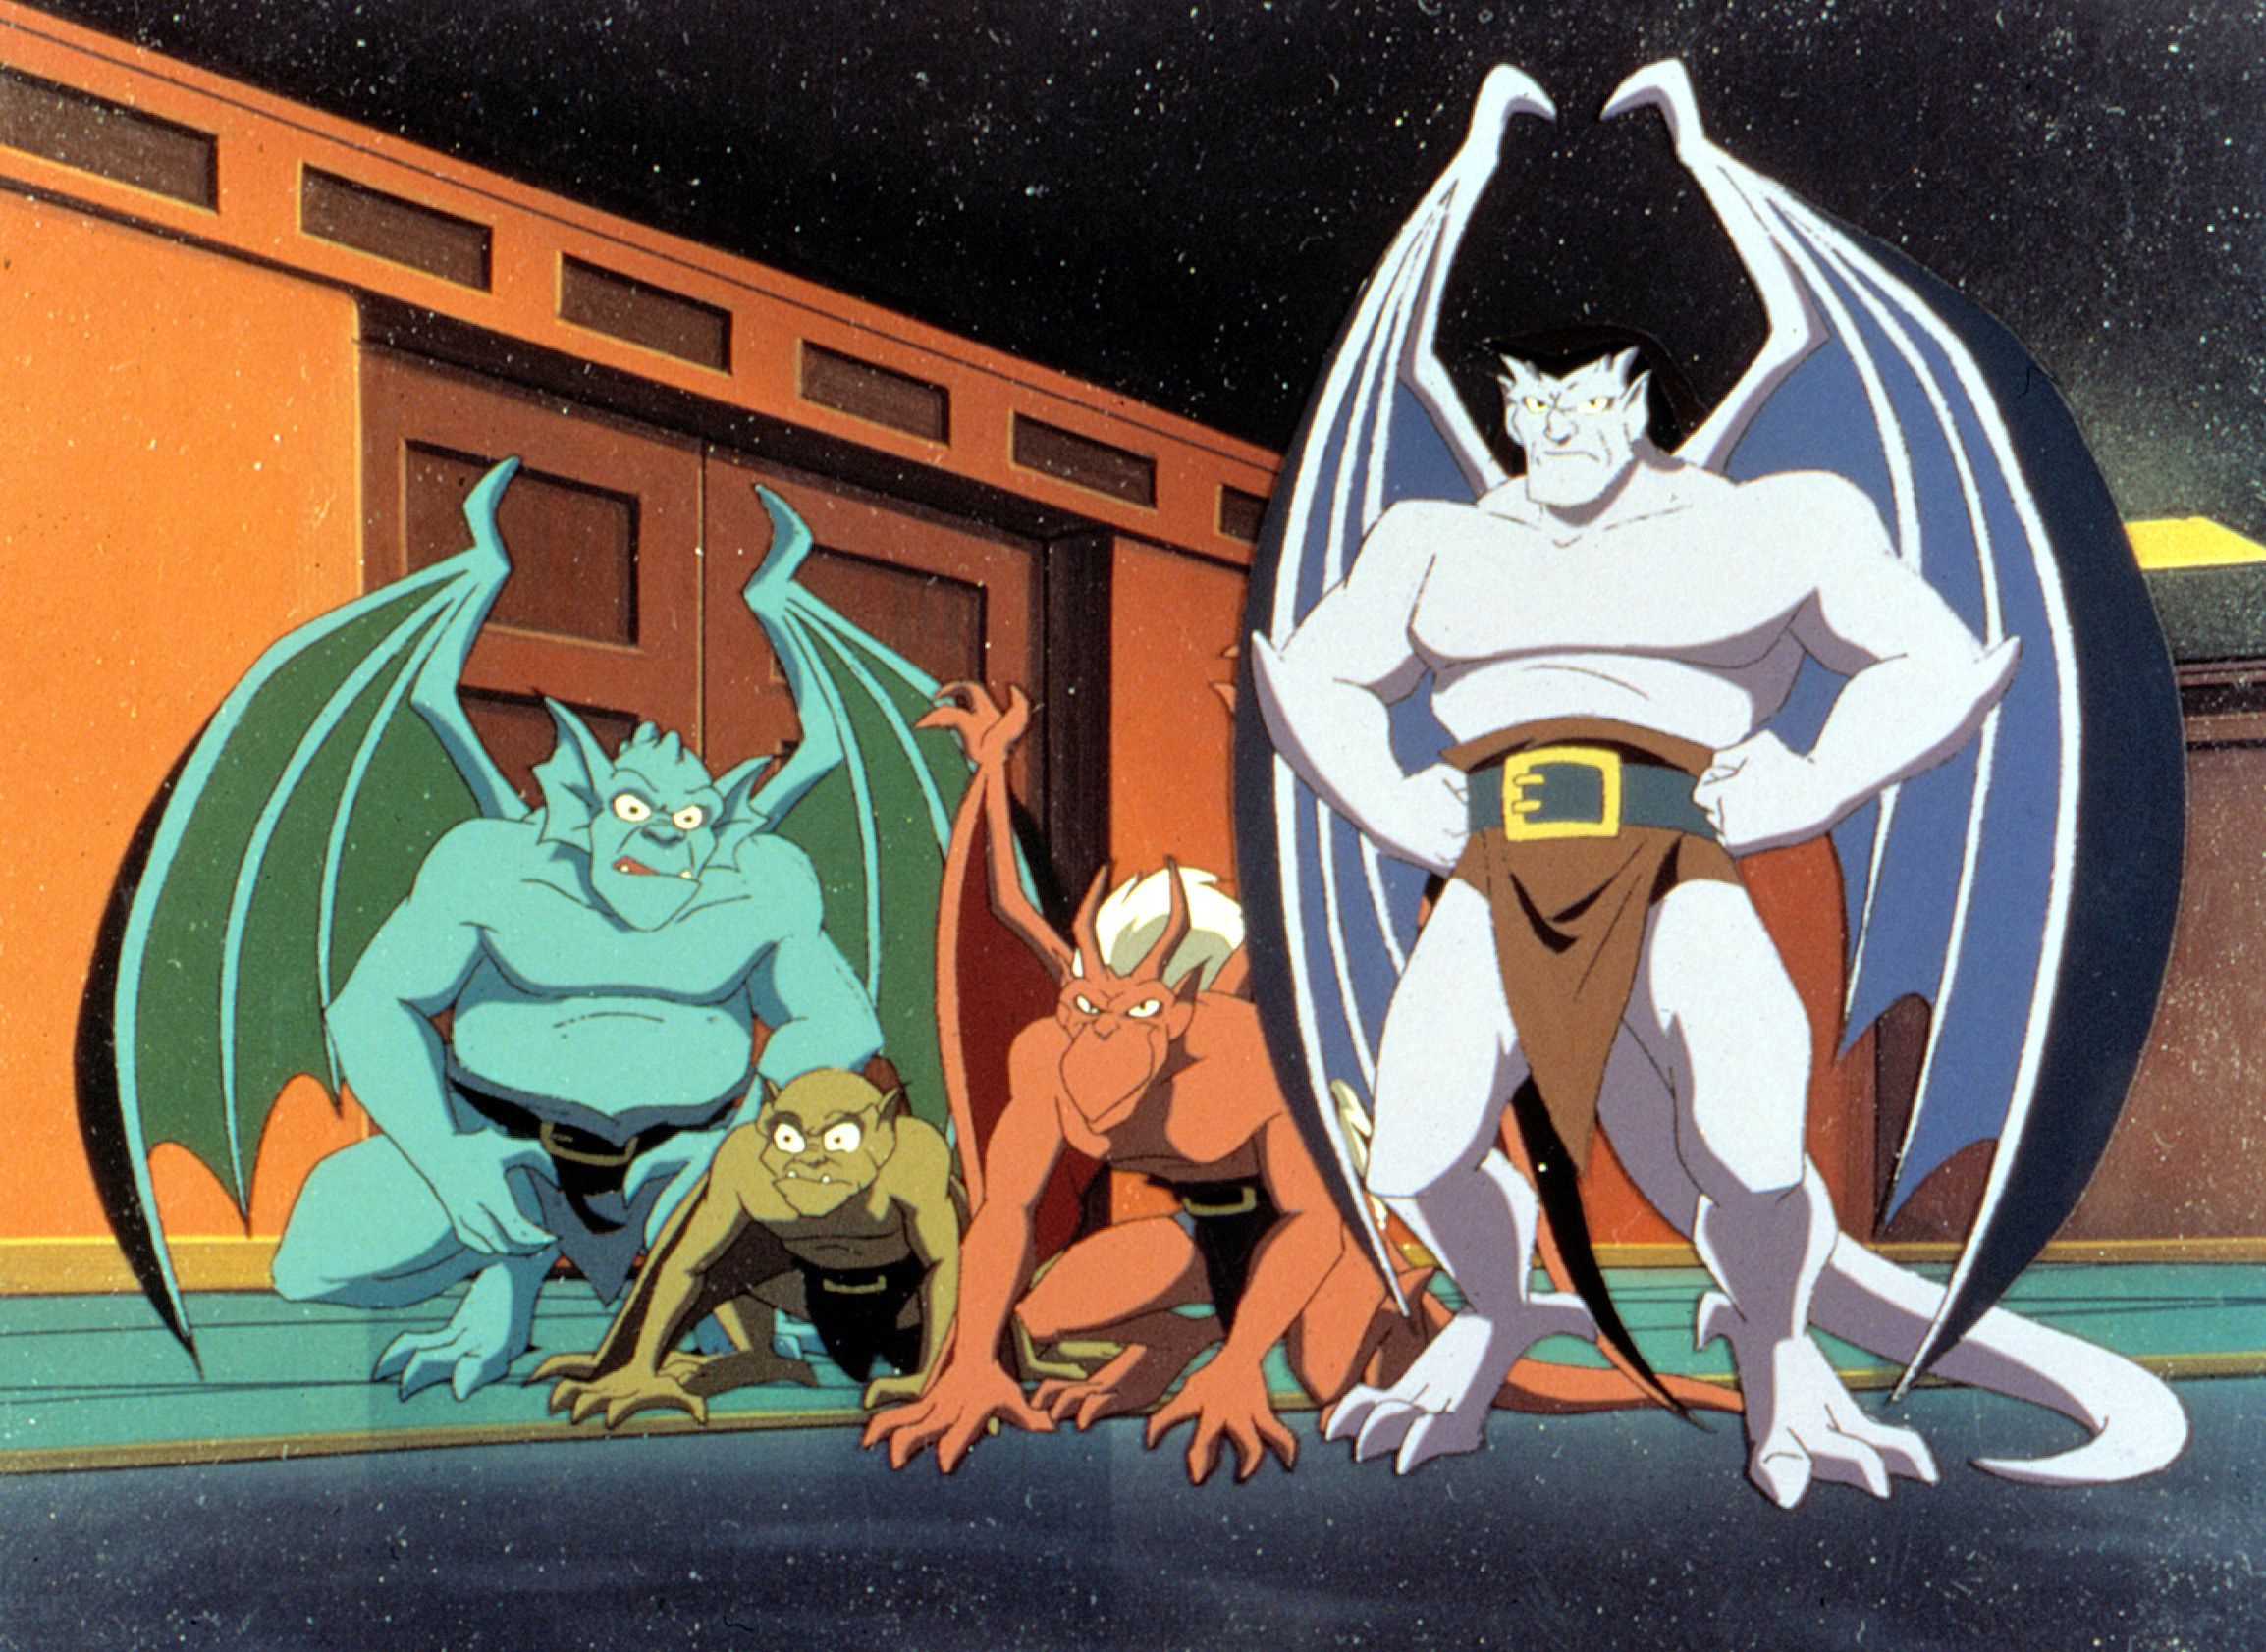 A group of gargoyles sit perched